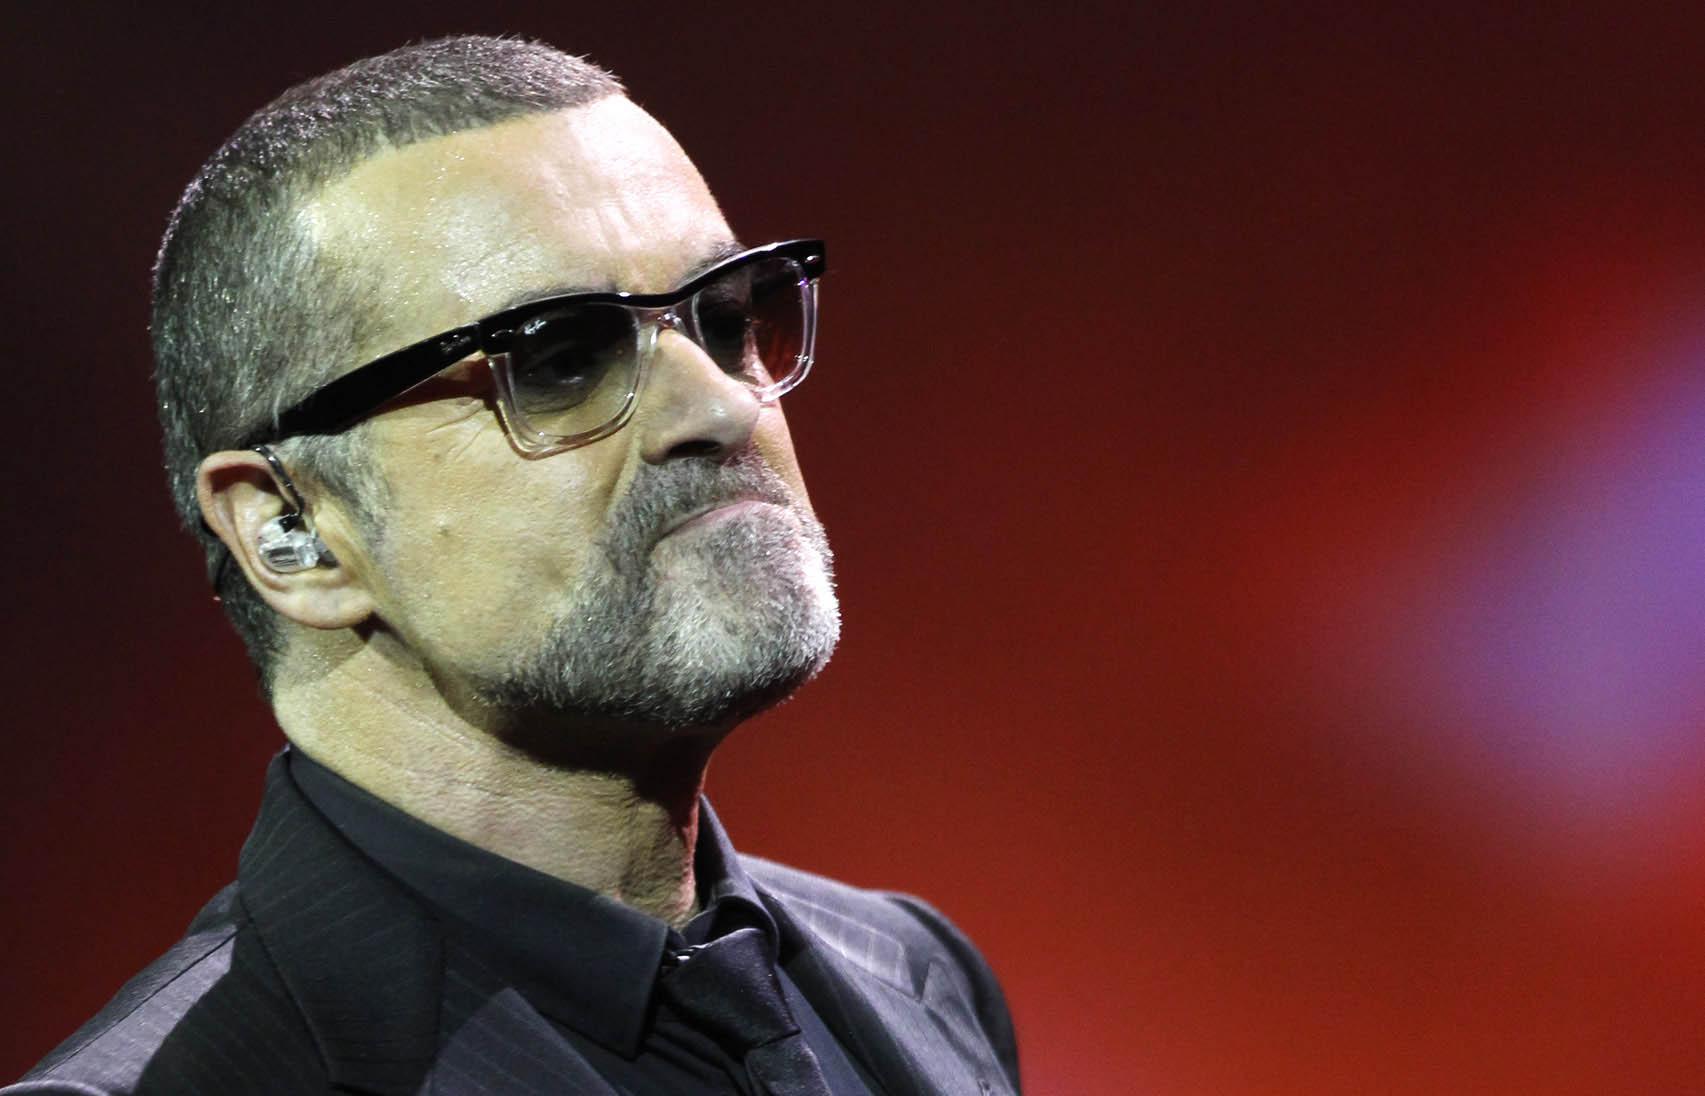 George Michael performs onstage in London for his 'Symphonica: The Orchestral Tour' in 2011.  Michael has died, the BBC reported Sunday evening. (Dave Hogan/Getty Images file photo)